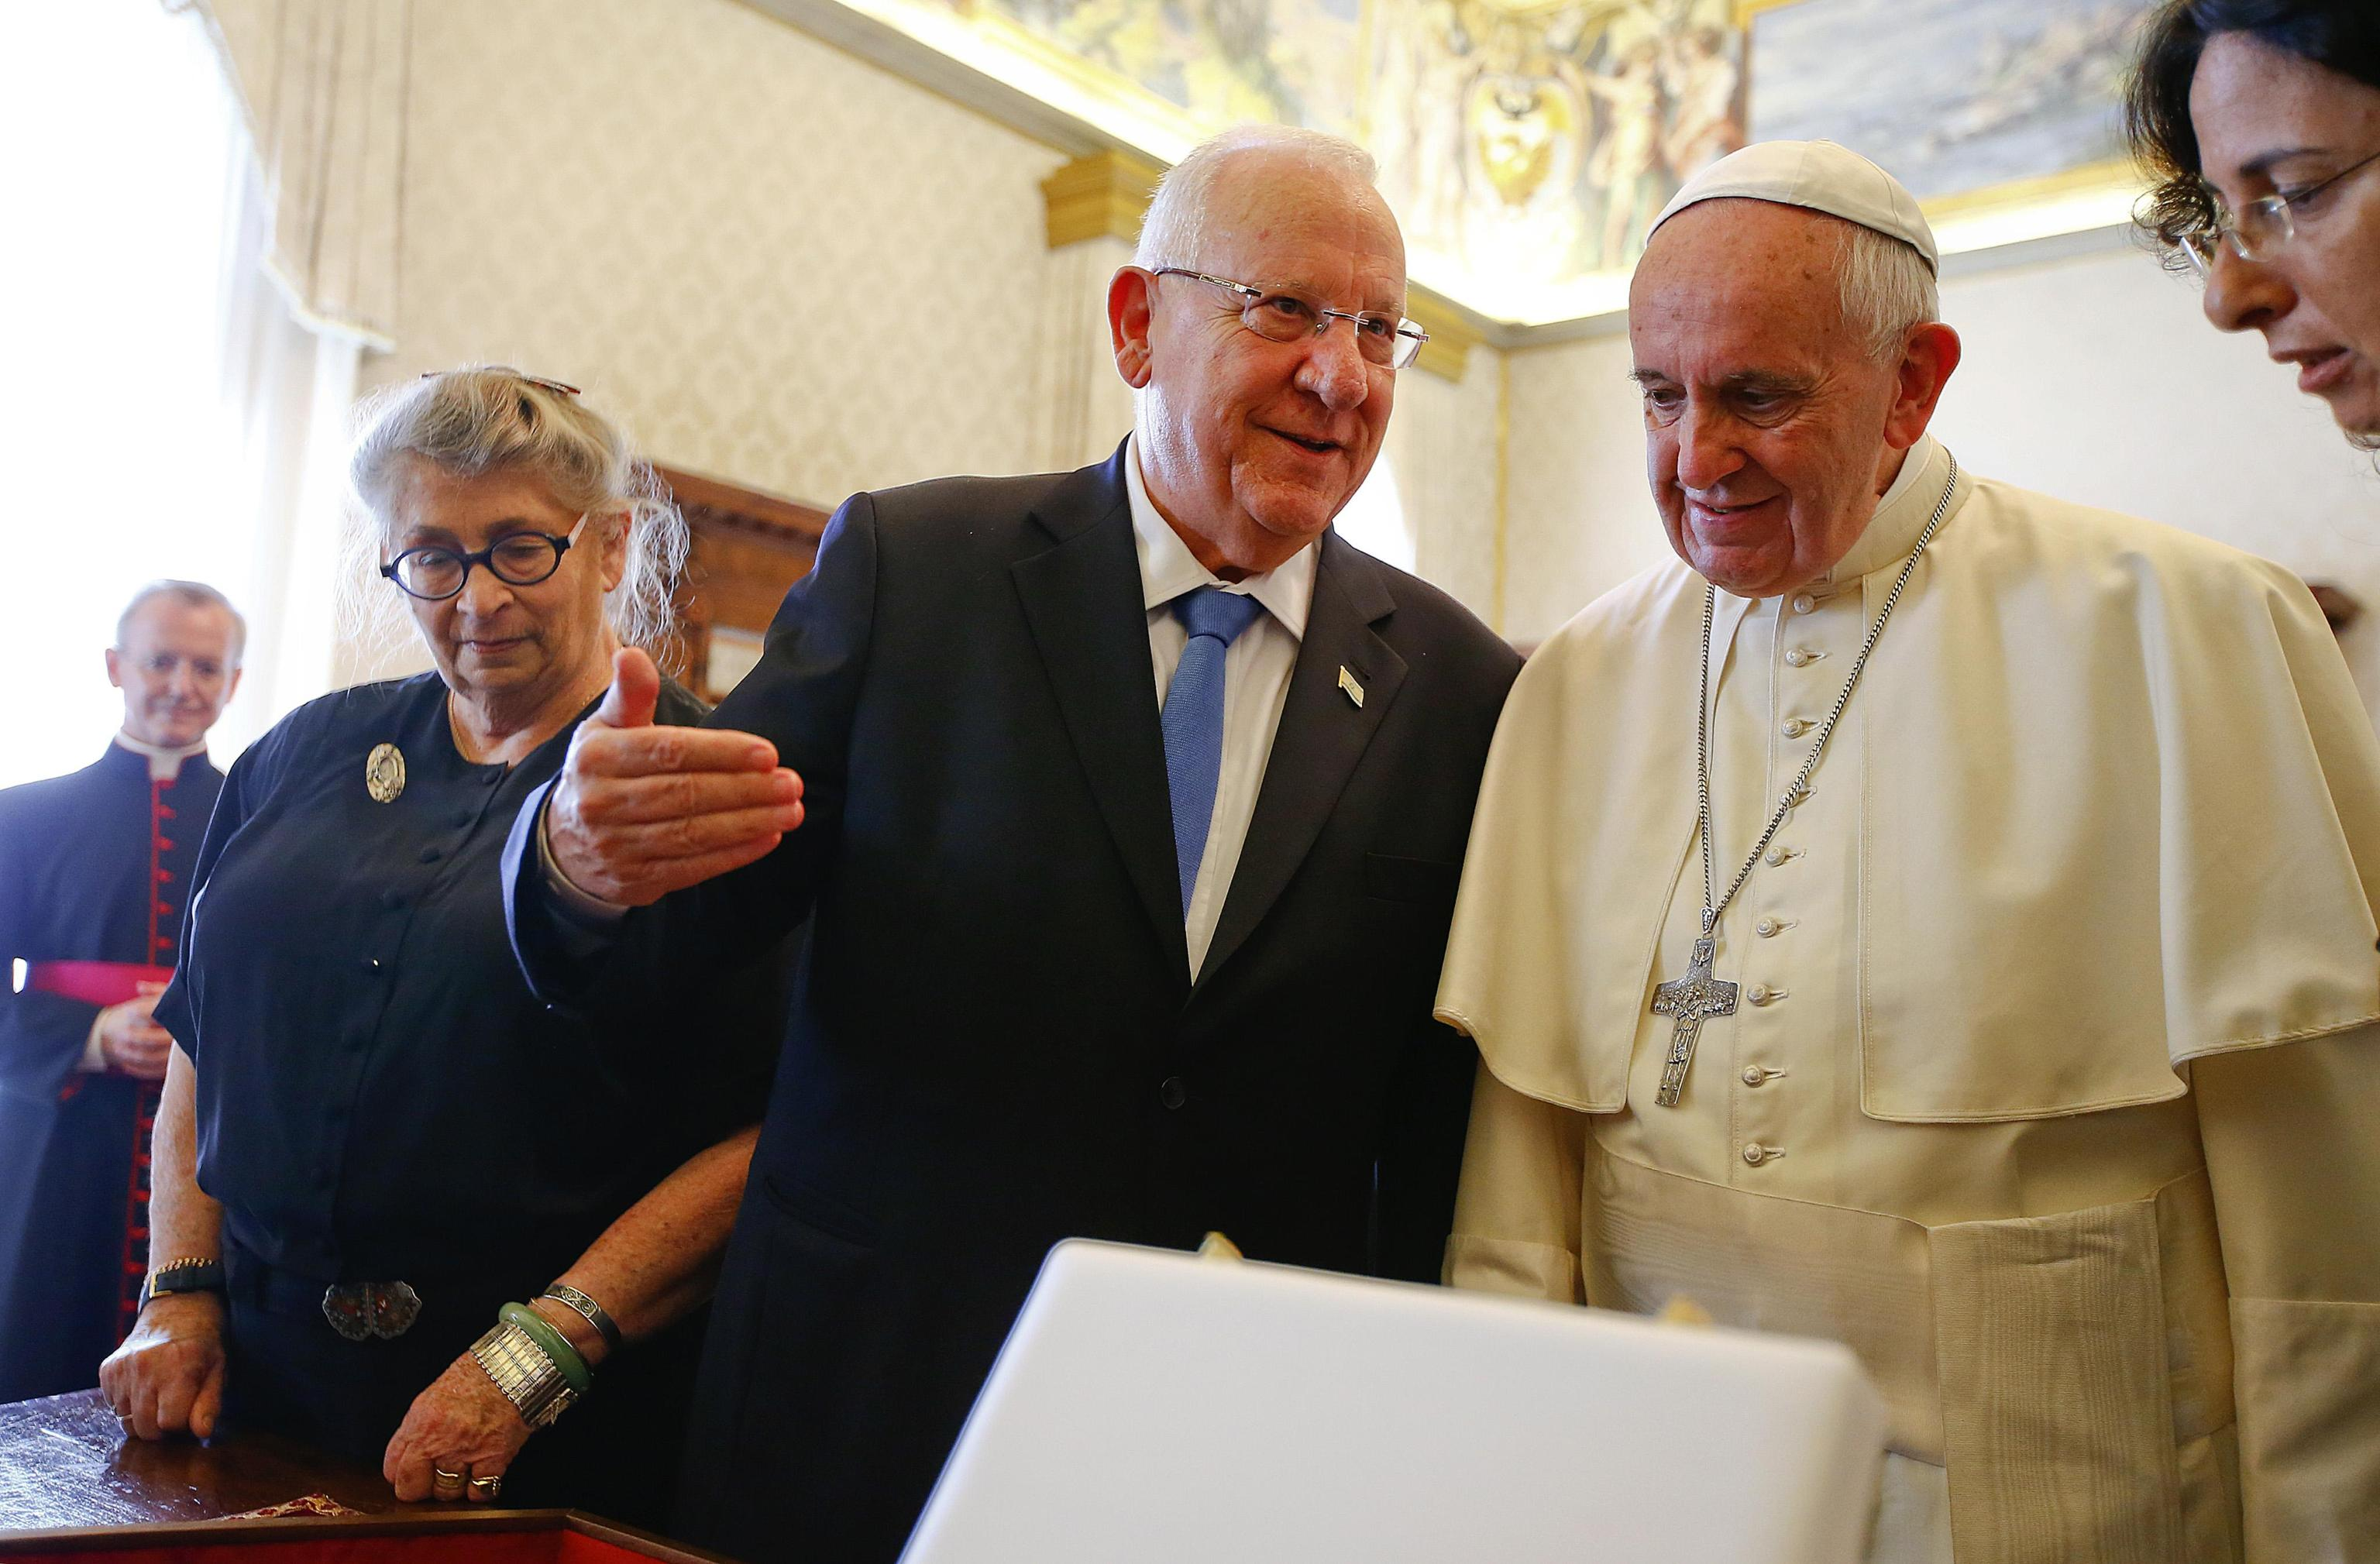 Pope Francis listens to Israel's President Reuven Rivlin as they exchange gifts during a private audience in the Pontiff's private library at the Vatican